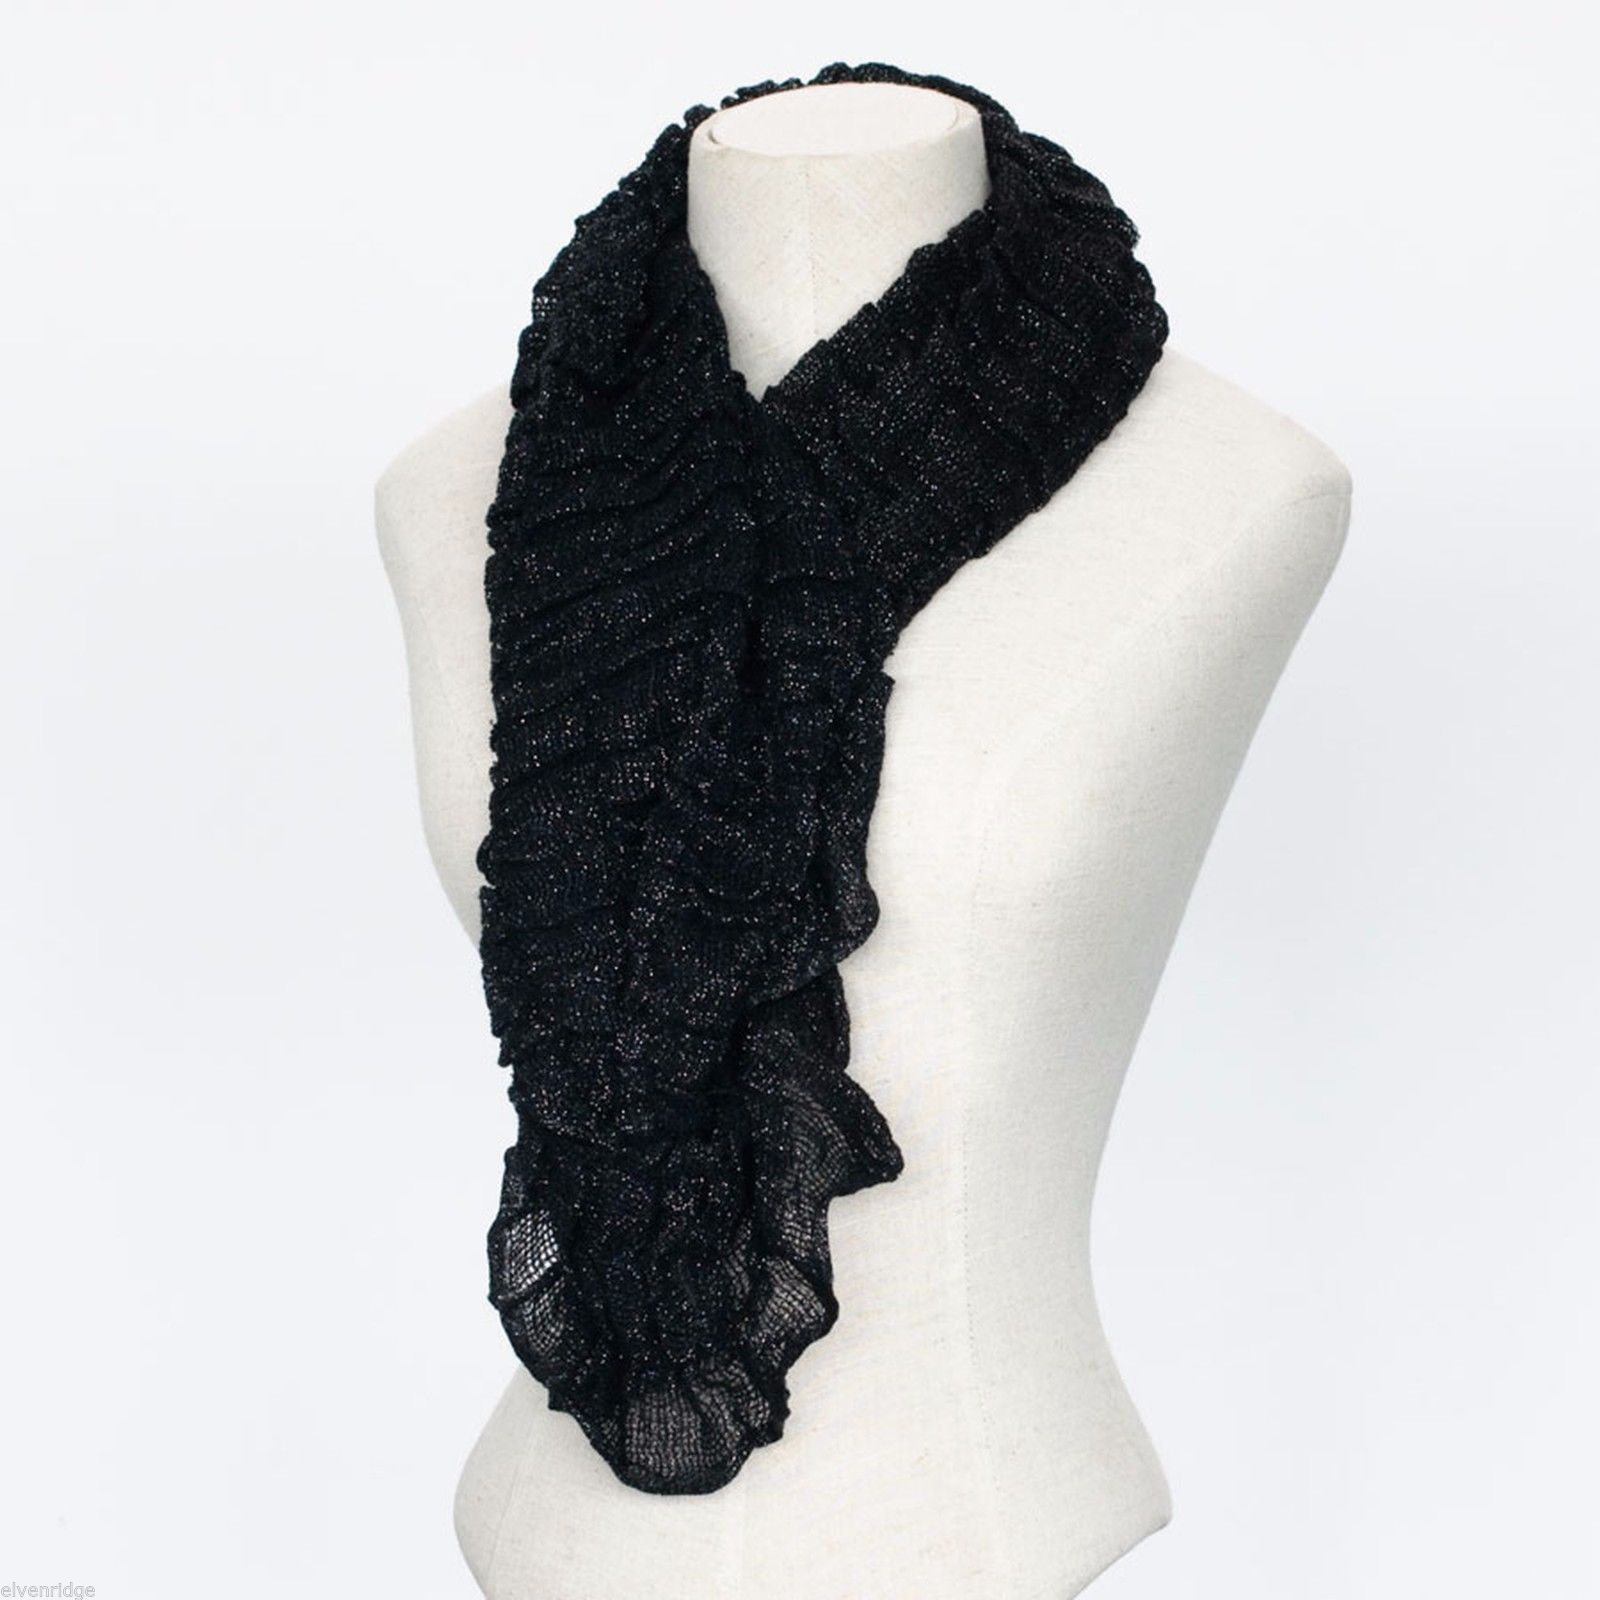 Black Lurex Infinity Scarf with Metallic Highlights NEW